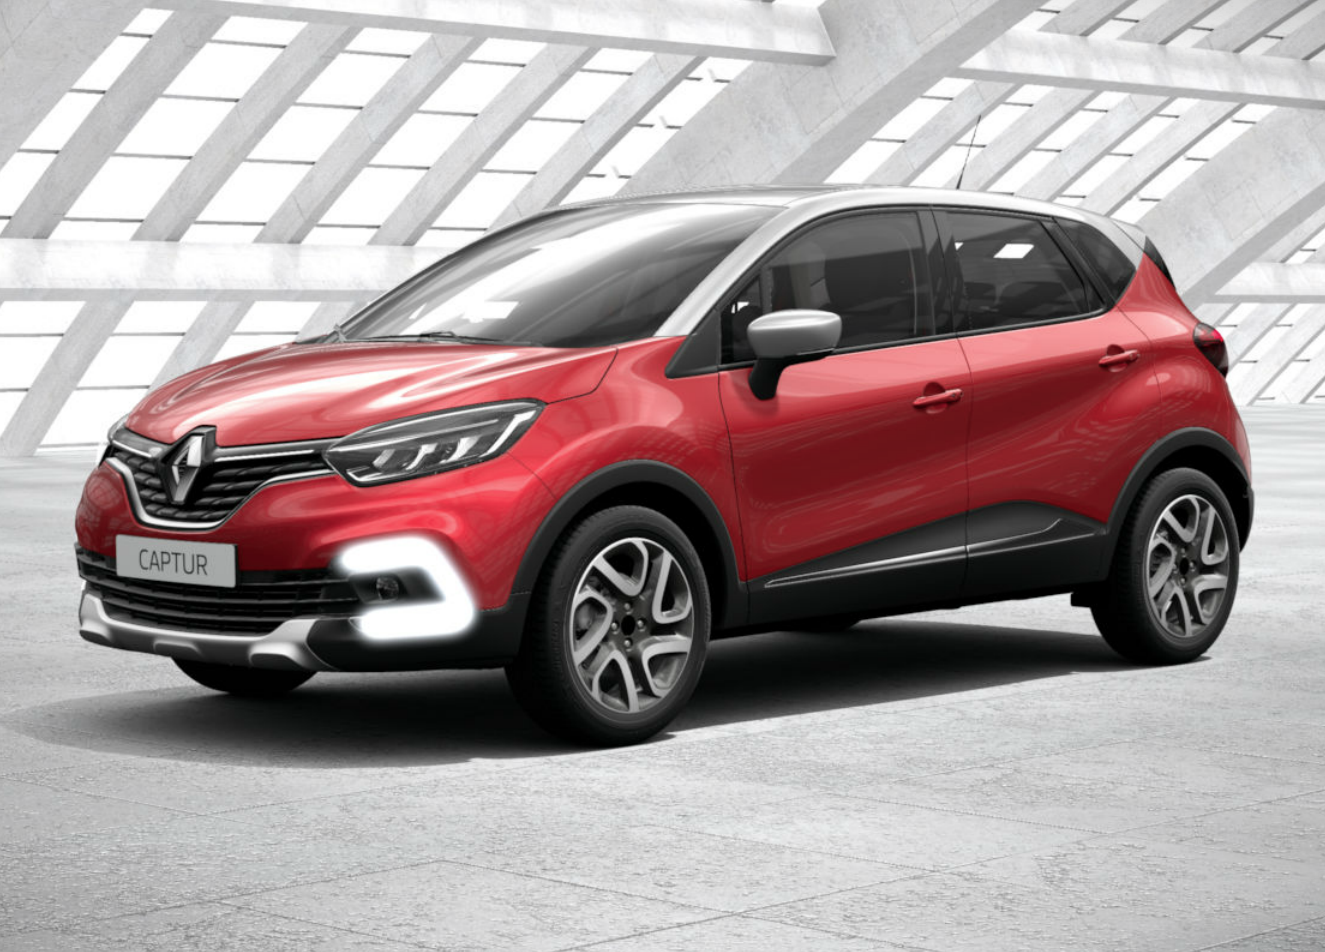 renault captur tce 120 cv start stop energy intens rosso passion nuova a soli 18600 su miacar. Black Bedroom Furniture Sets. Home Design Ideas